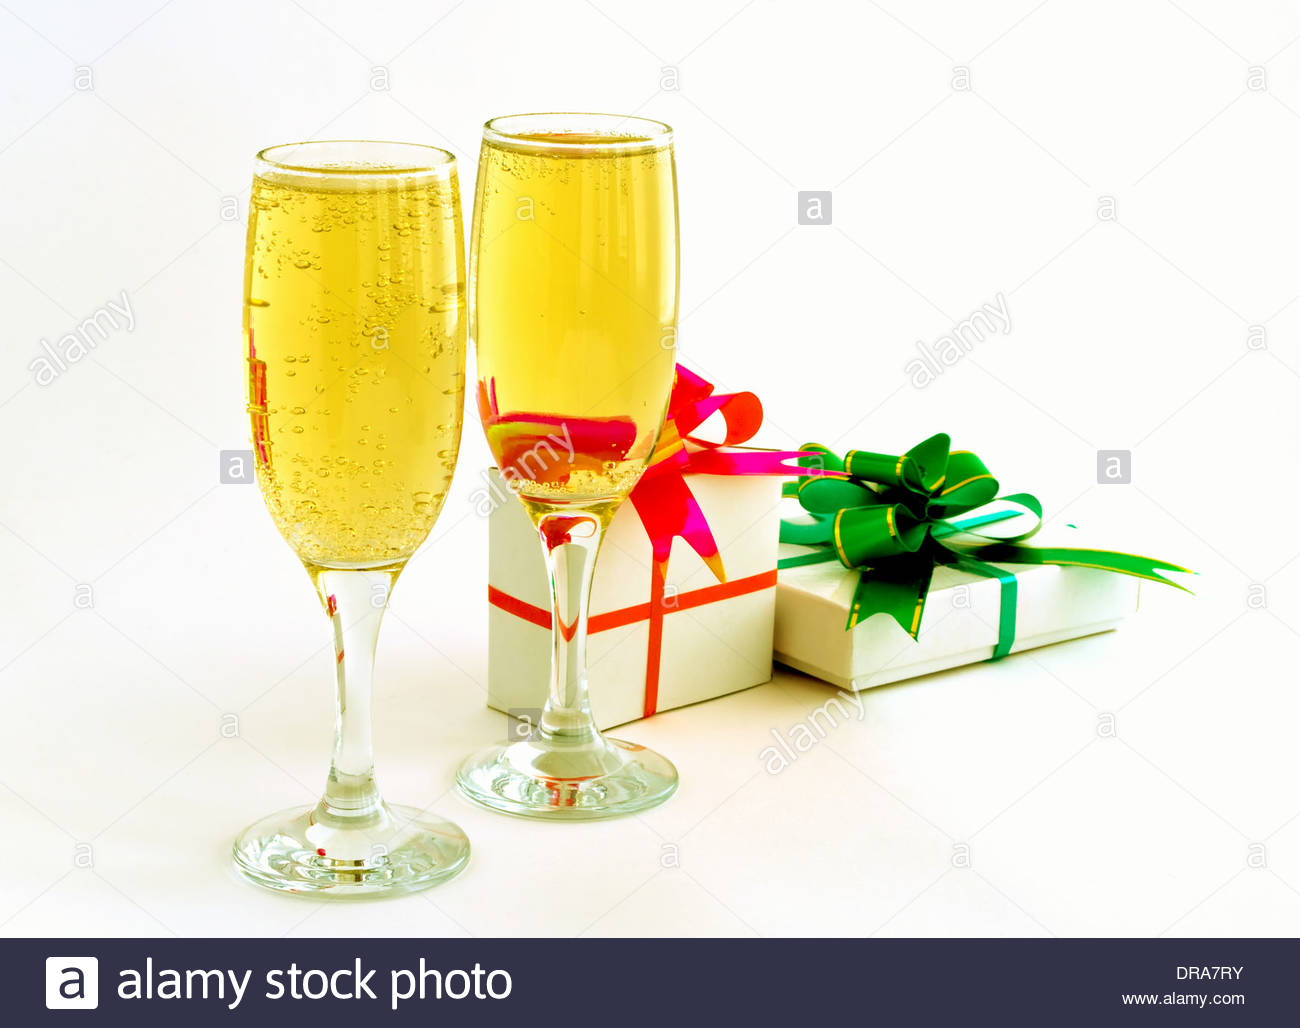 Drink champaign goblet two two goblets glass gift bows - Stock Image